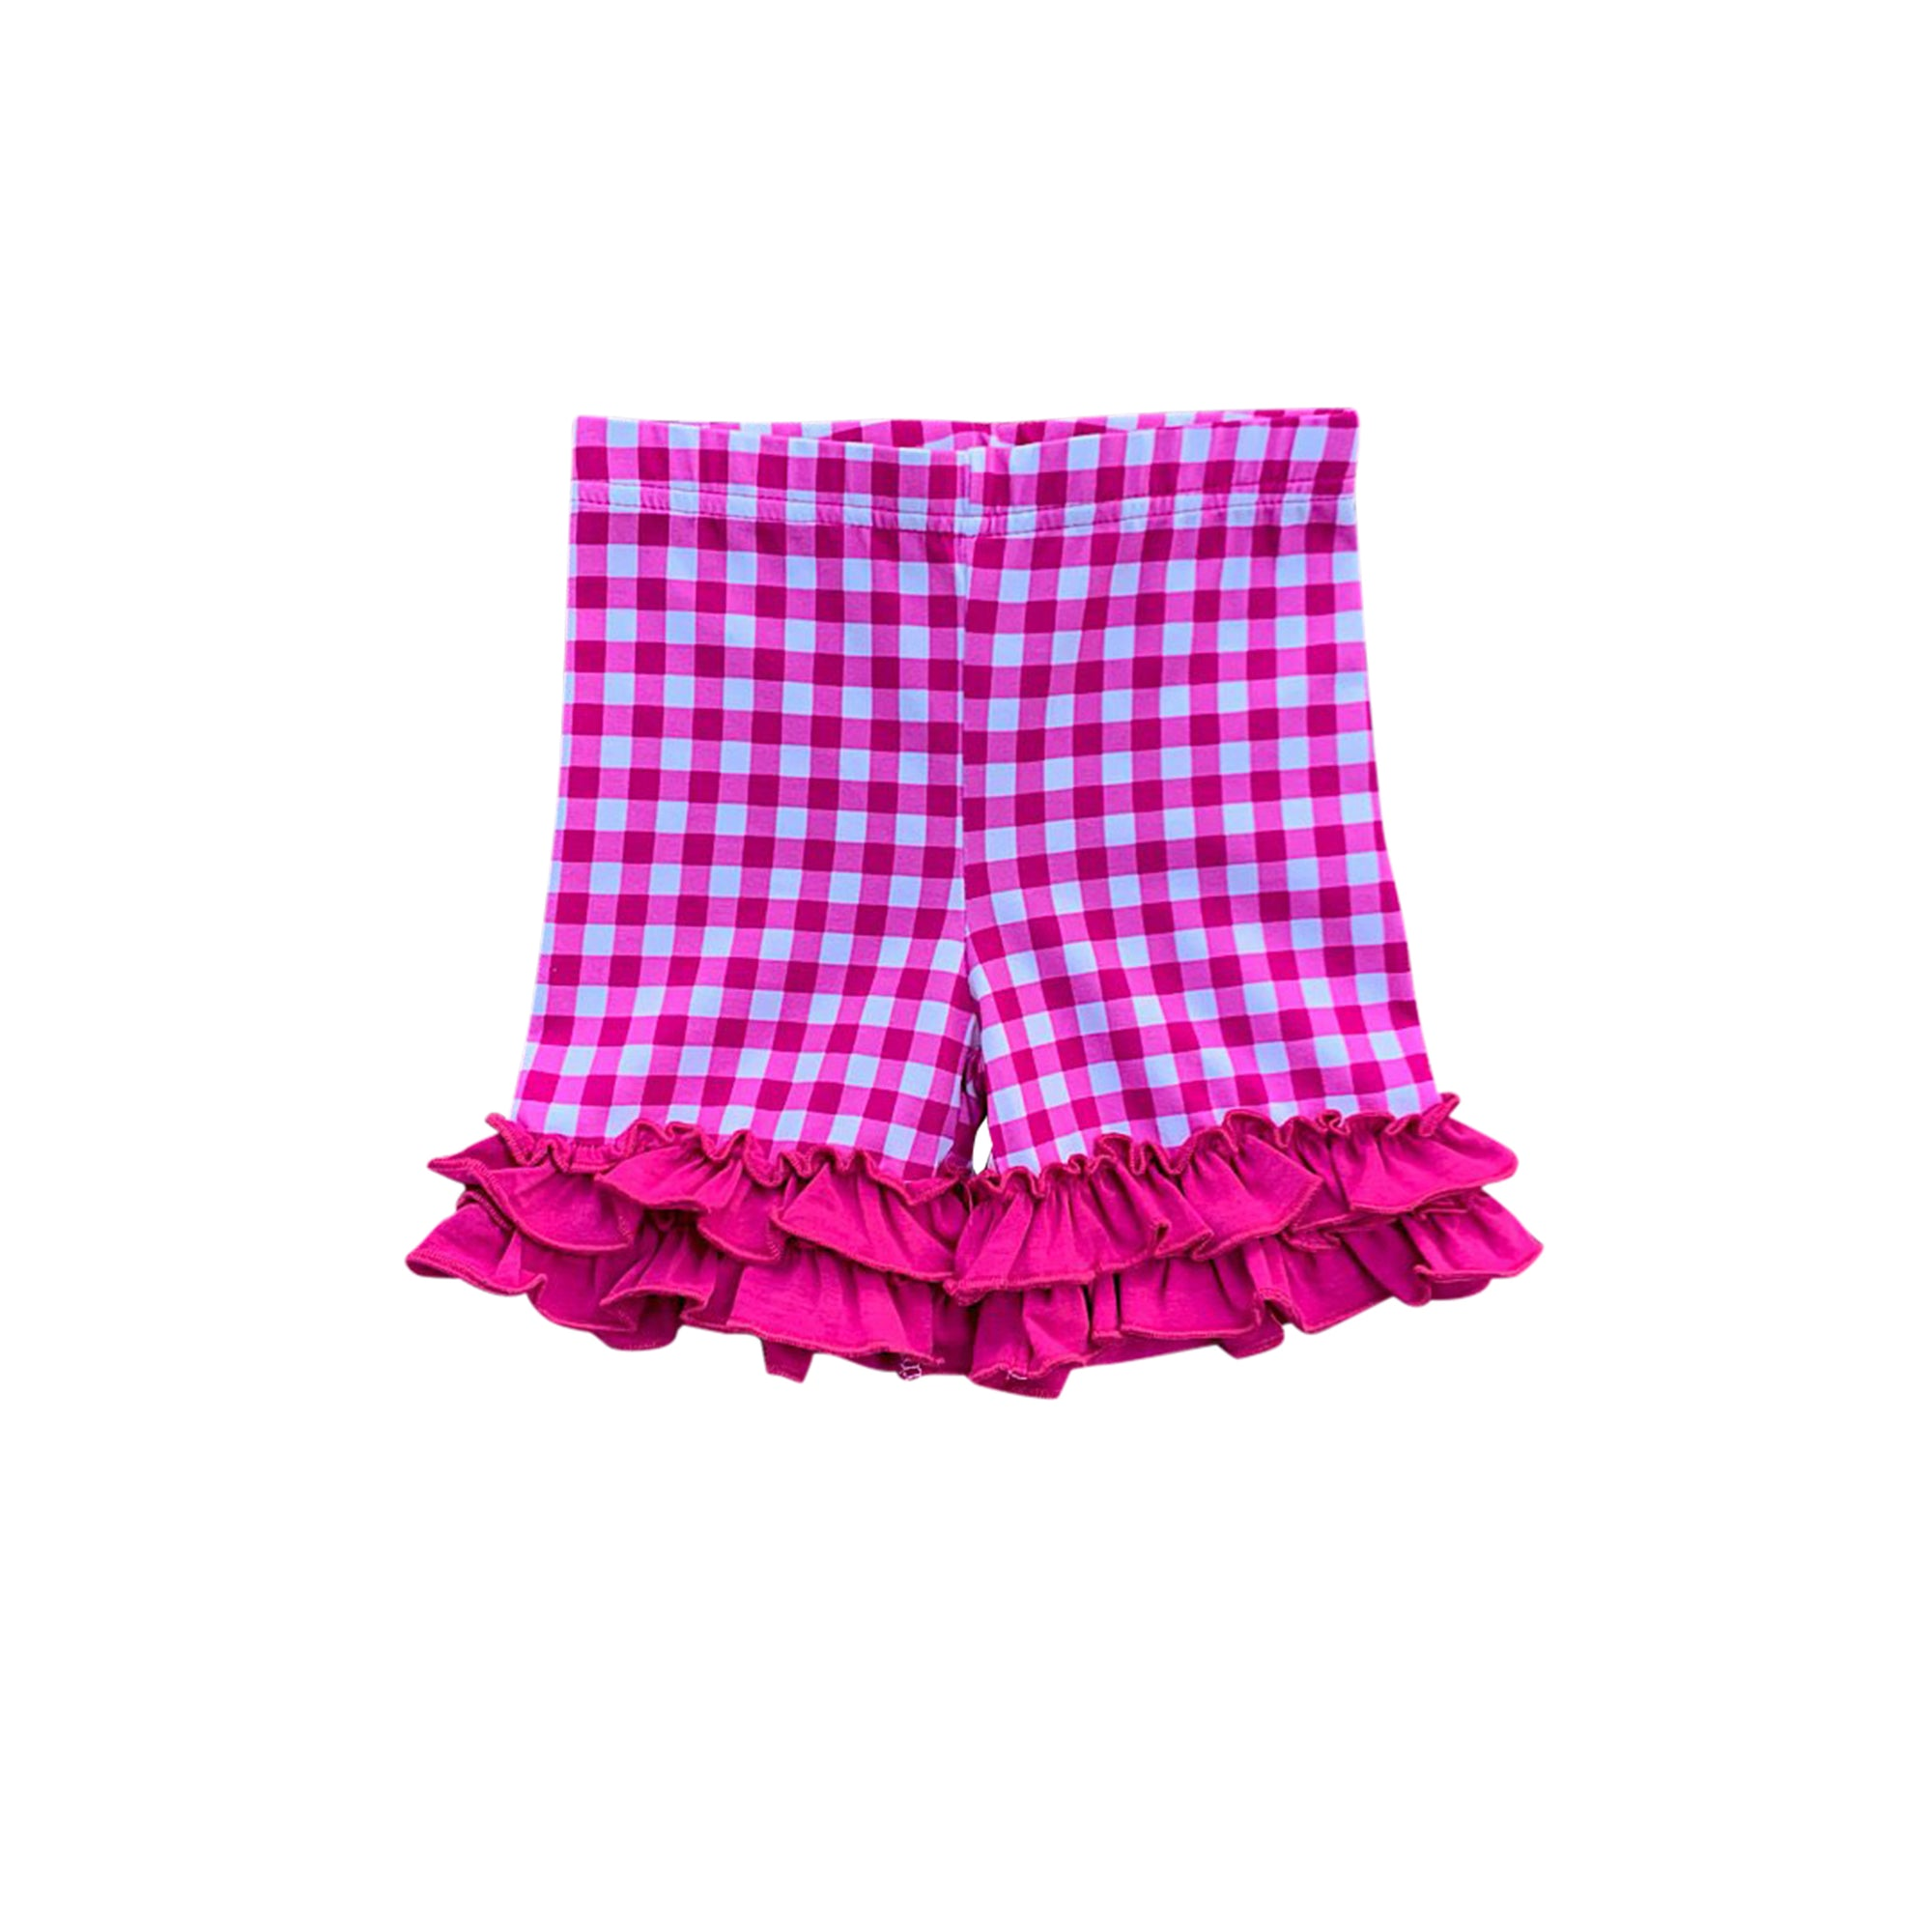 Wildberry Gingham Ruffle Shorties